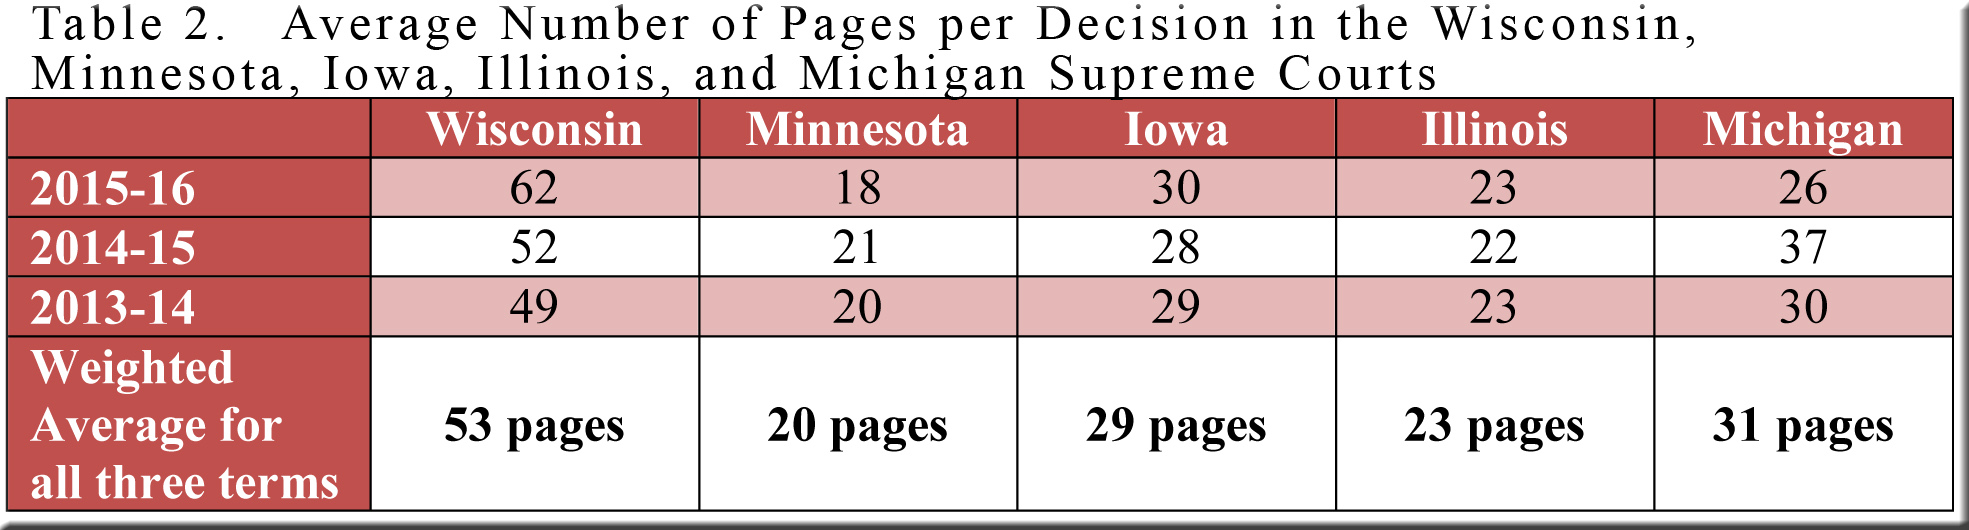 table-2-average-no-of-pages-per-decision-wi-mn-io-il-mi